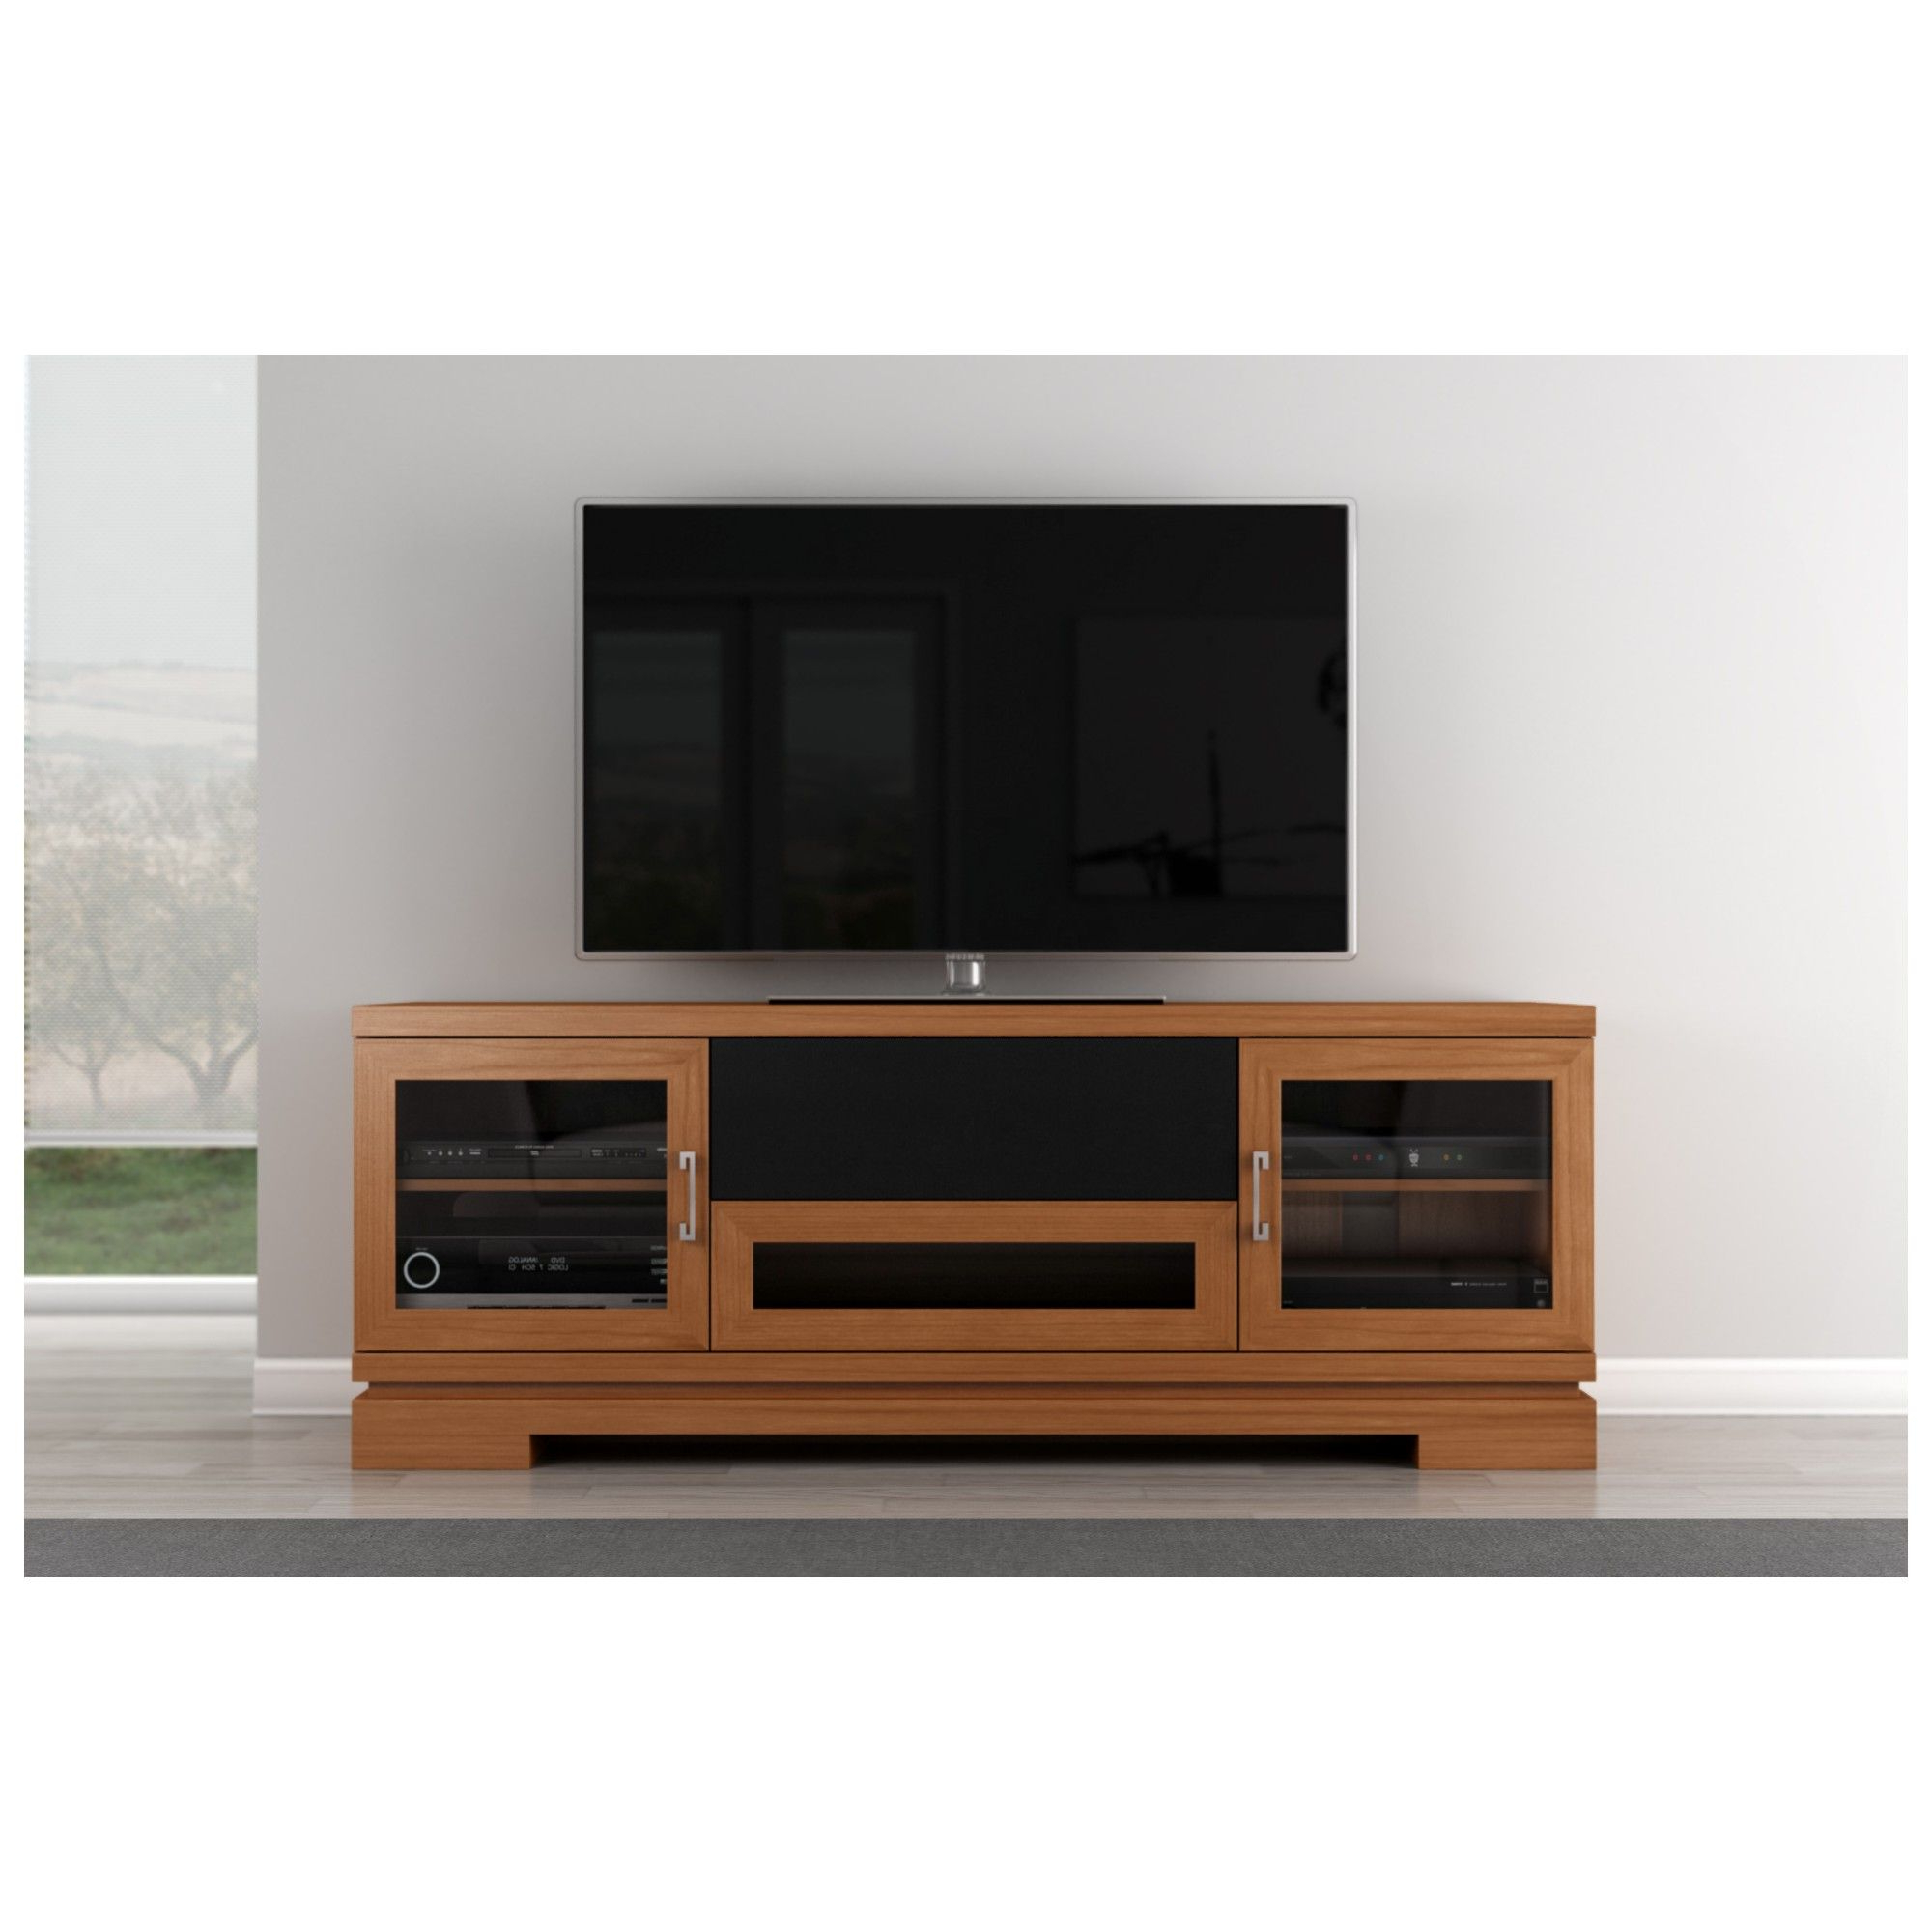 "2017 70"" Tv Stand Contemporary Media Cabinet W/ Center Speaker Opening In Throughout Contemporary Tv Cabinets For Flat Screens (View 1 of 20)"